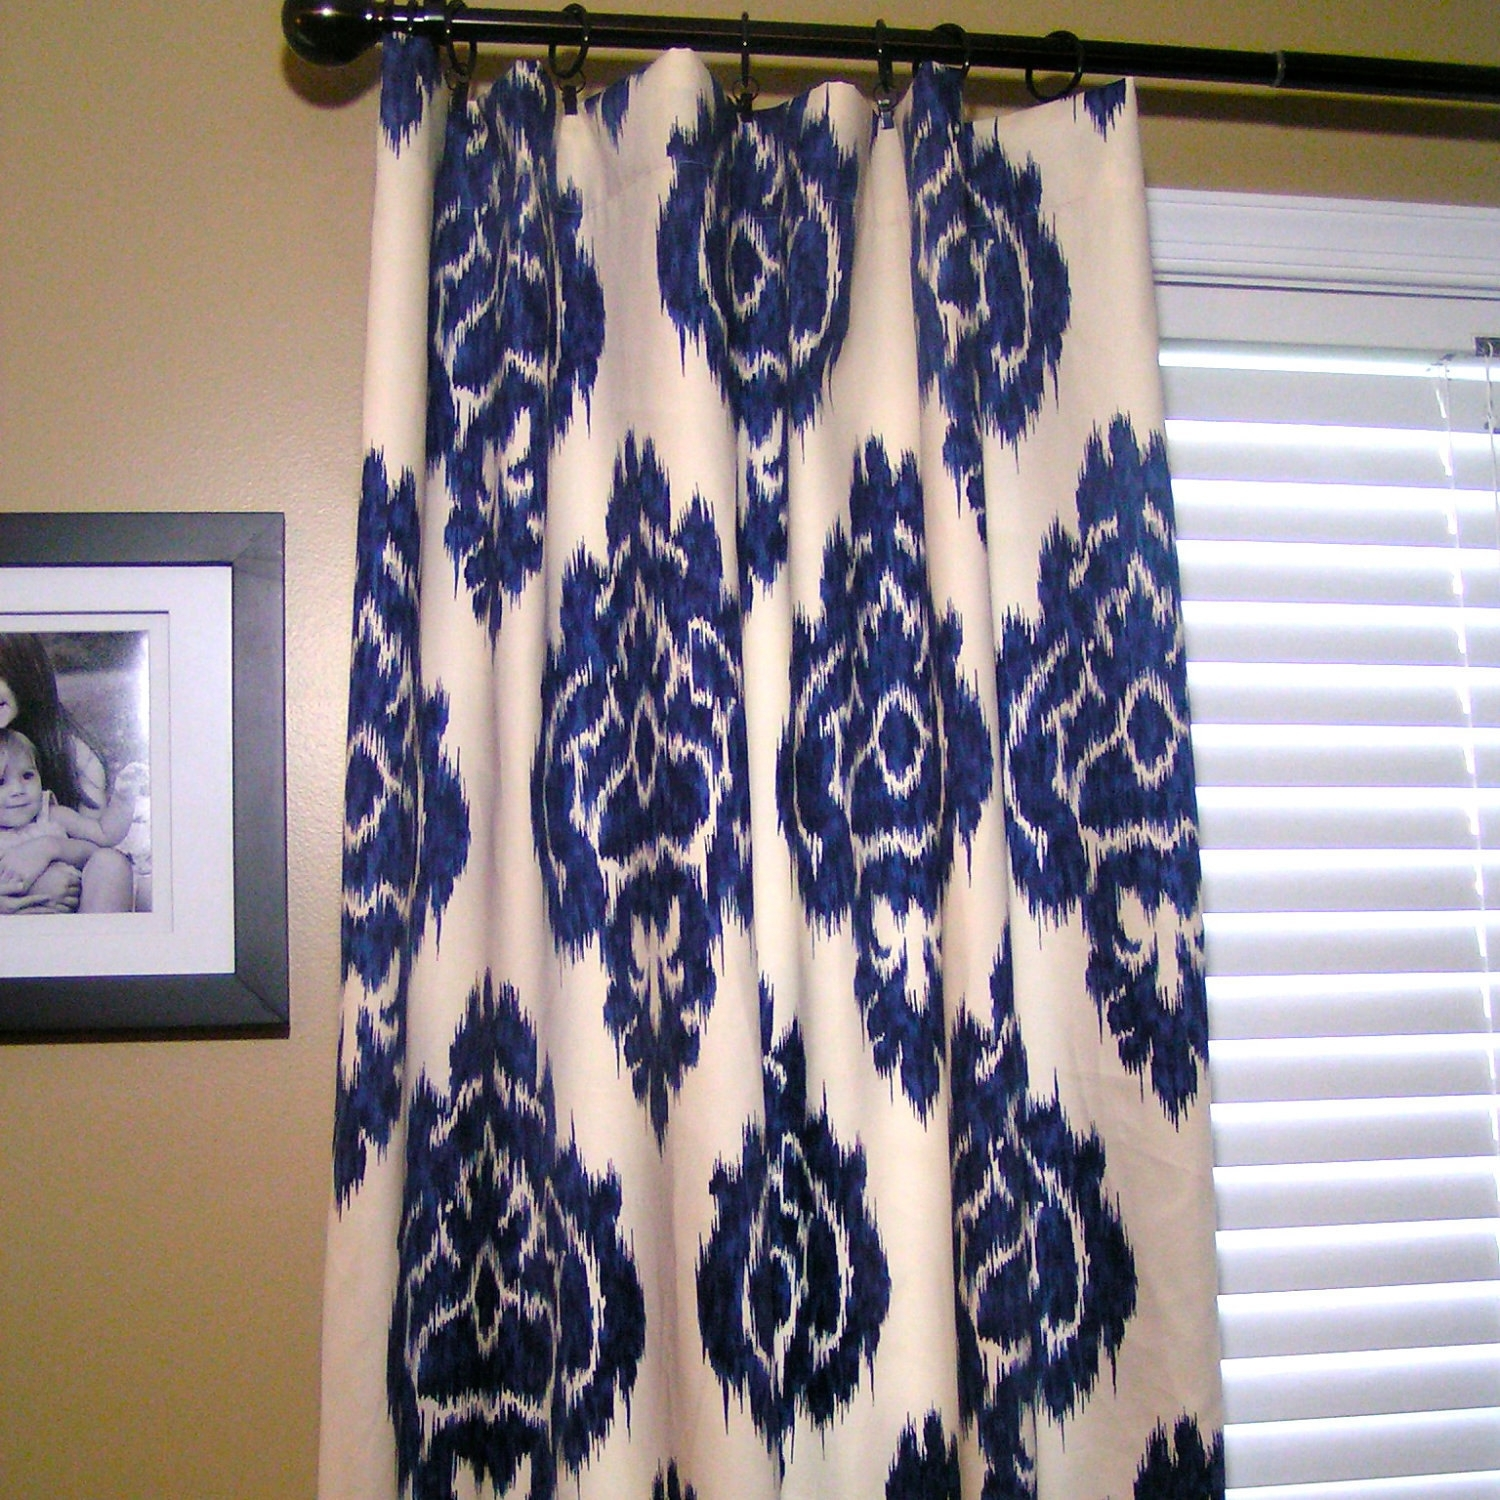 Decor: Contrasting Fabric Borders Ikat Curtains With Blinds And Intended For Most Current Ikat Fabric Wall Art (View 12 of 15)